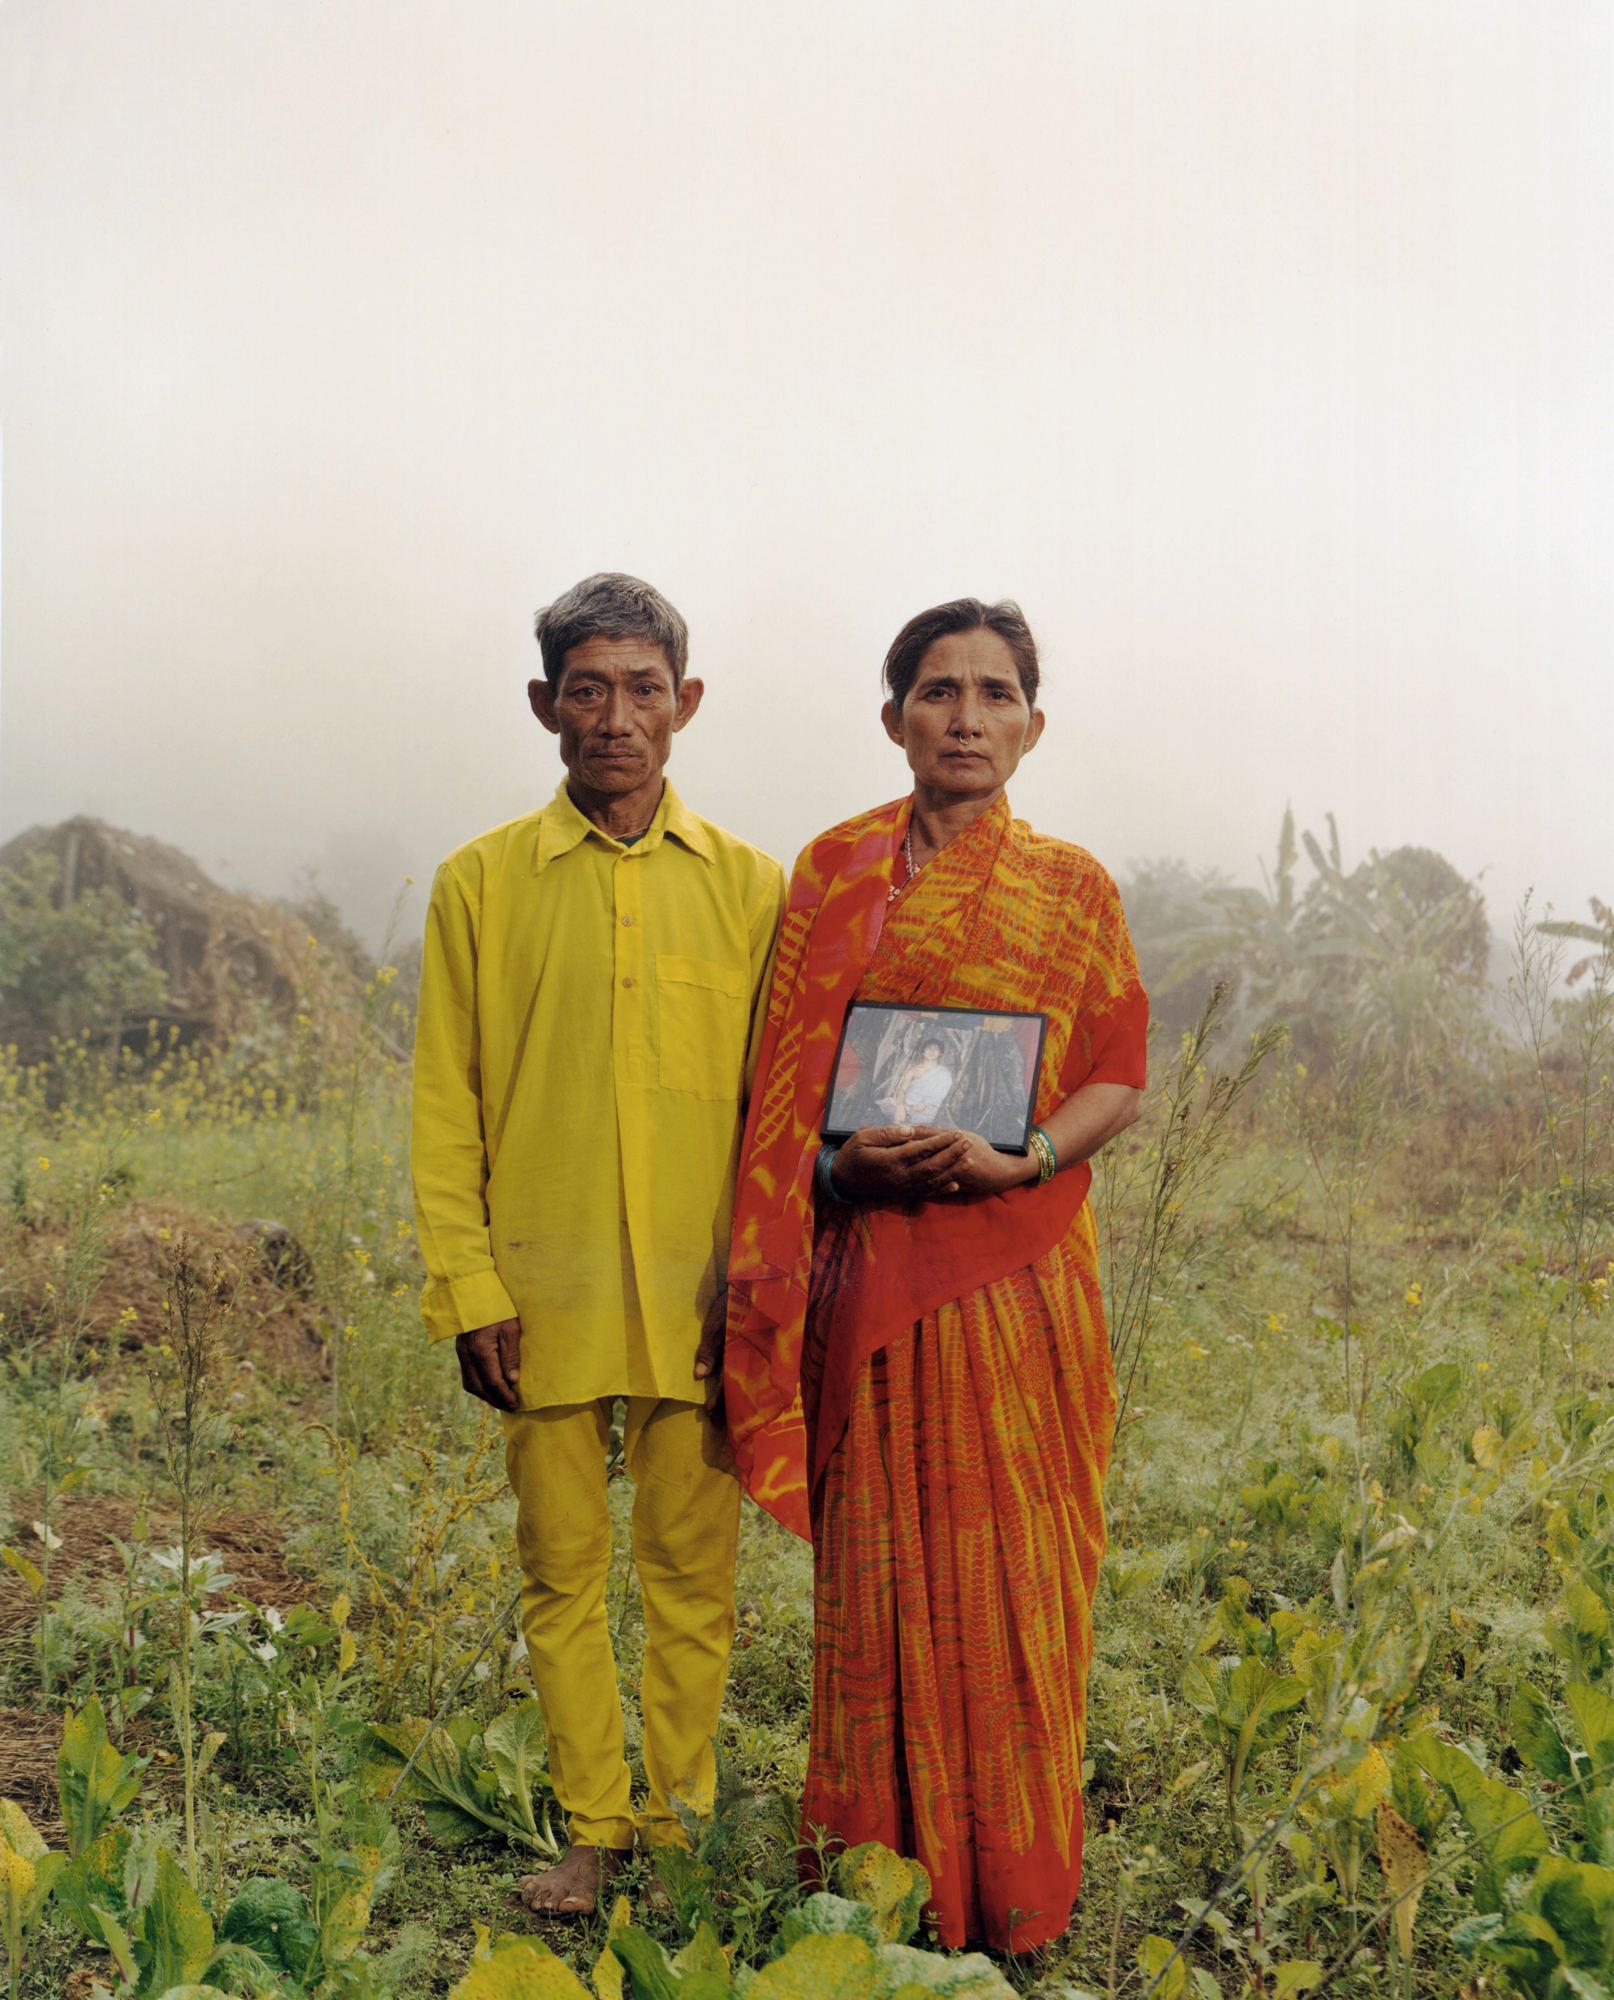 """The parents of the """"Buddha Boy"""" holding a photo of their son - Bara Region, Nepal, 2006"""